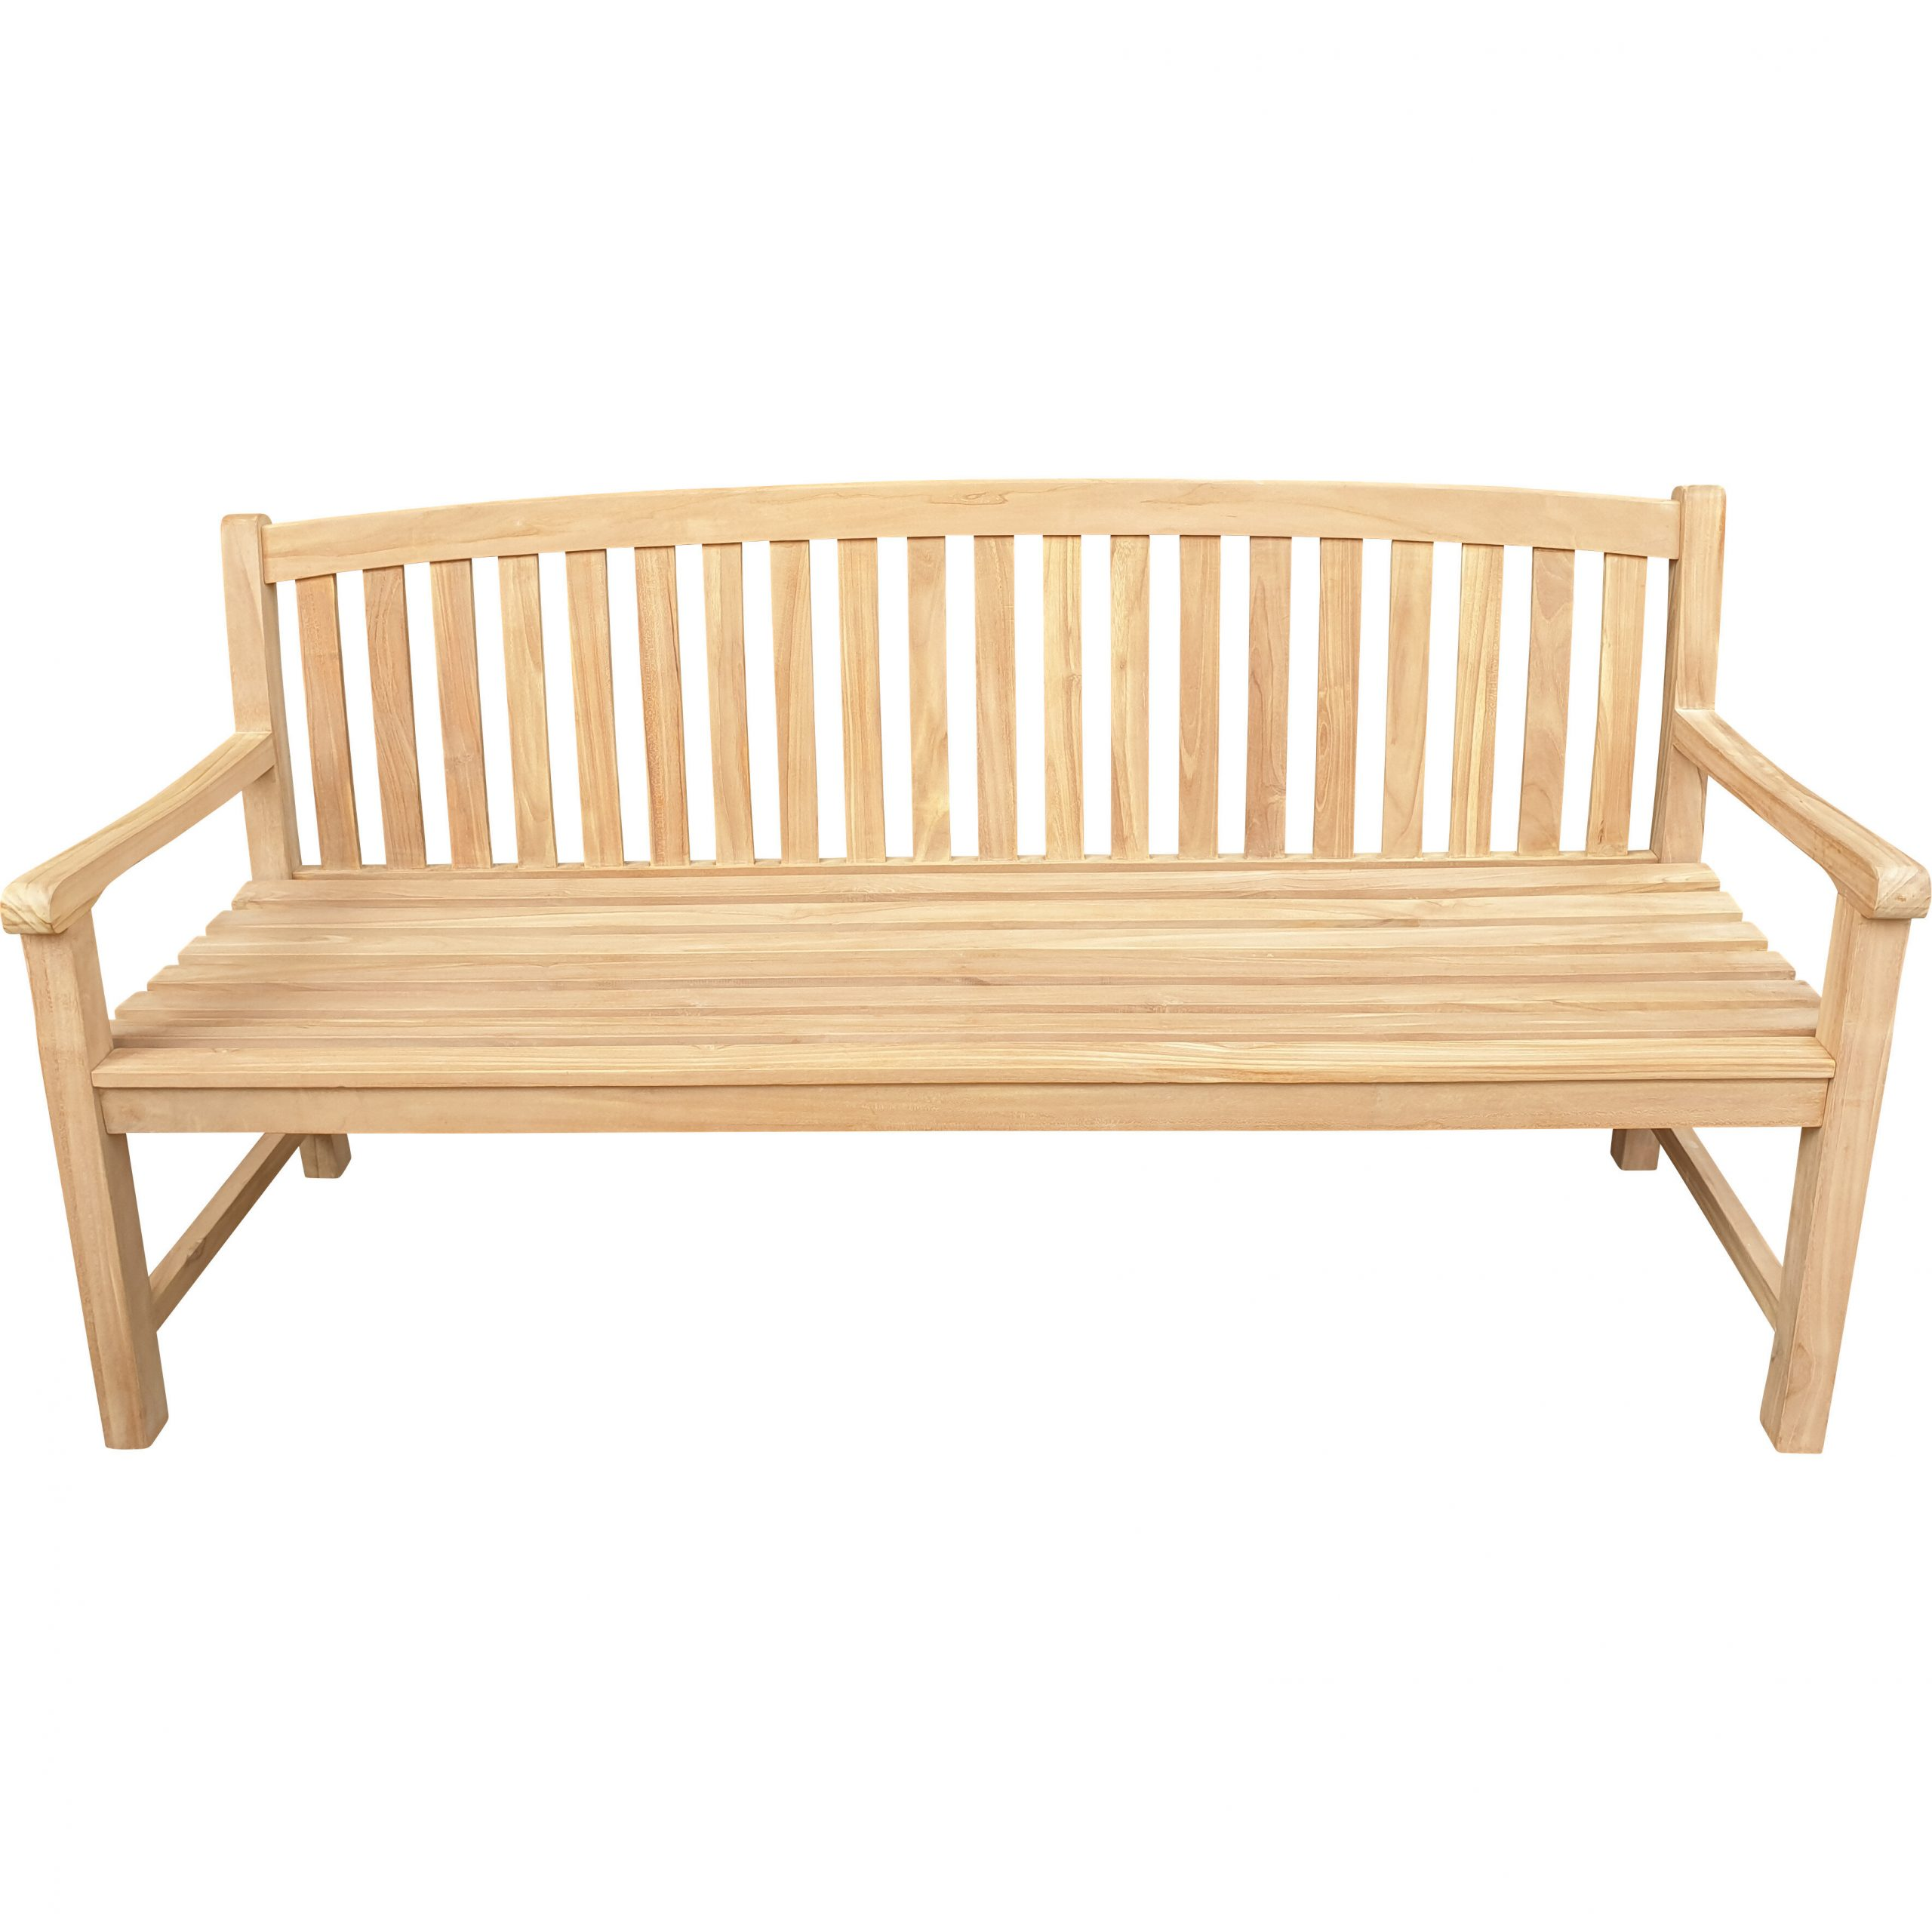 Casanova Solid Wood Garden Bench Throughout Shelbie Wooden Garden Benches (View 20 of 25)